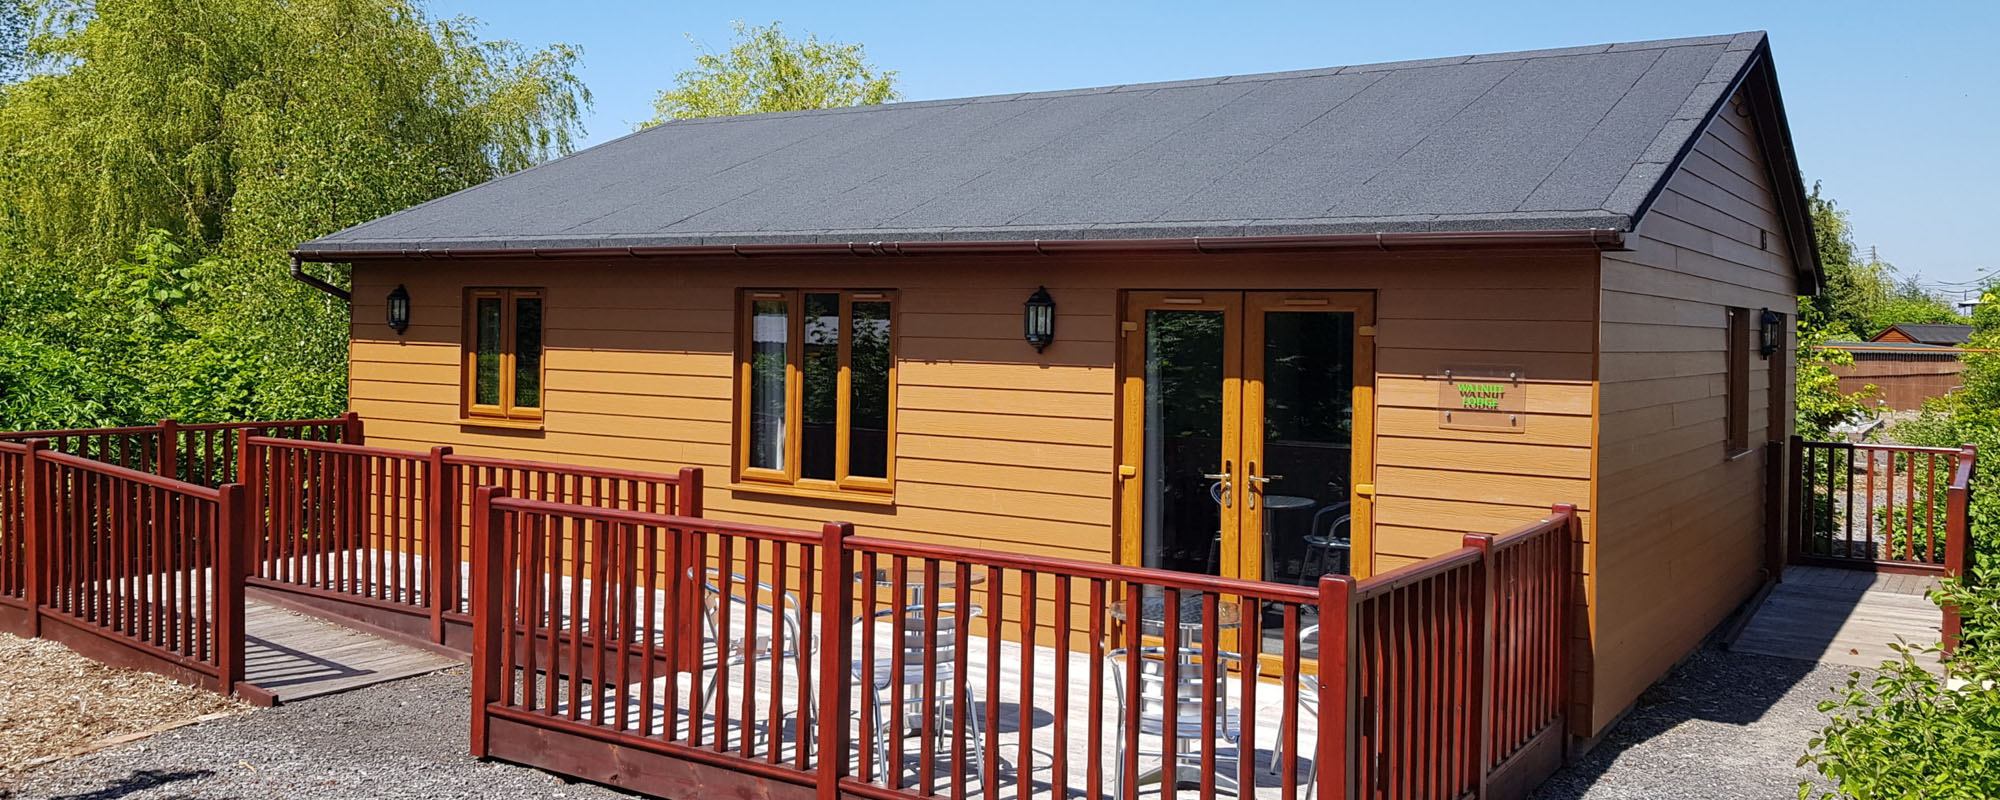 holiday-lodges